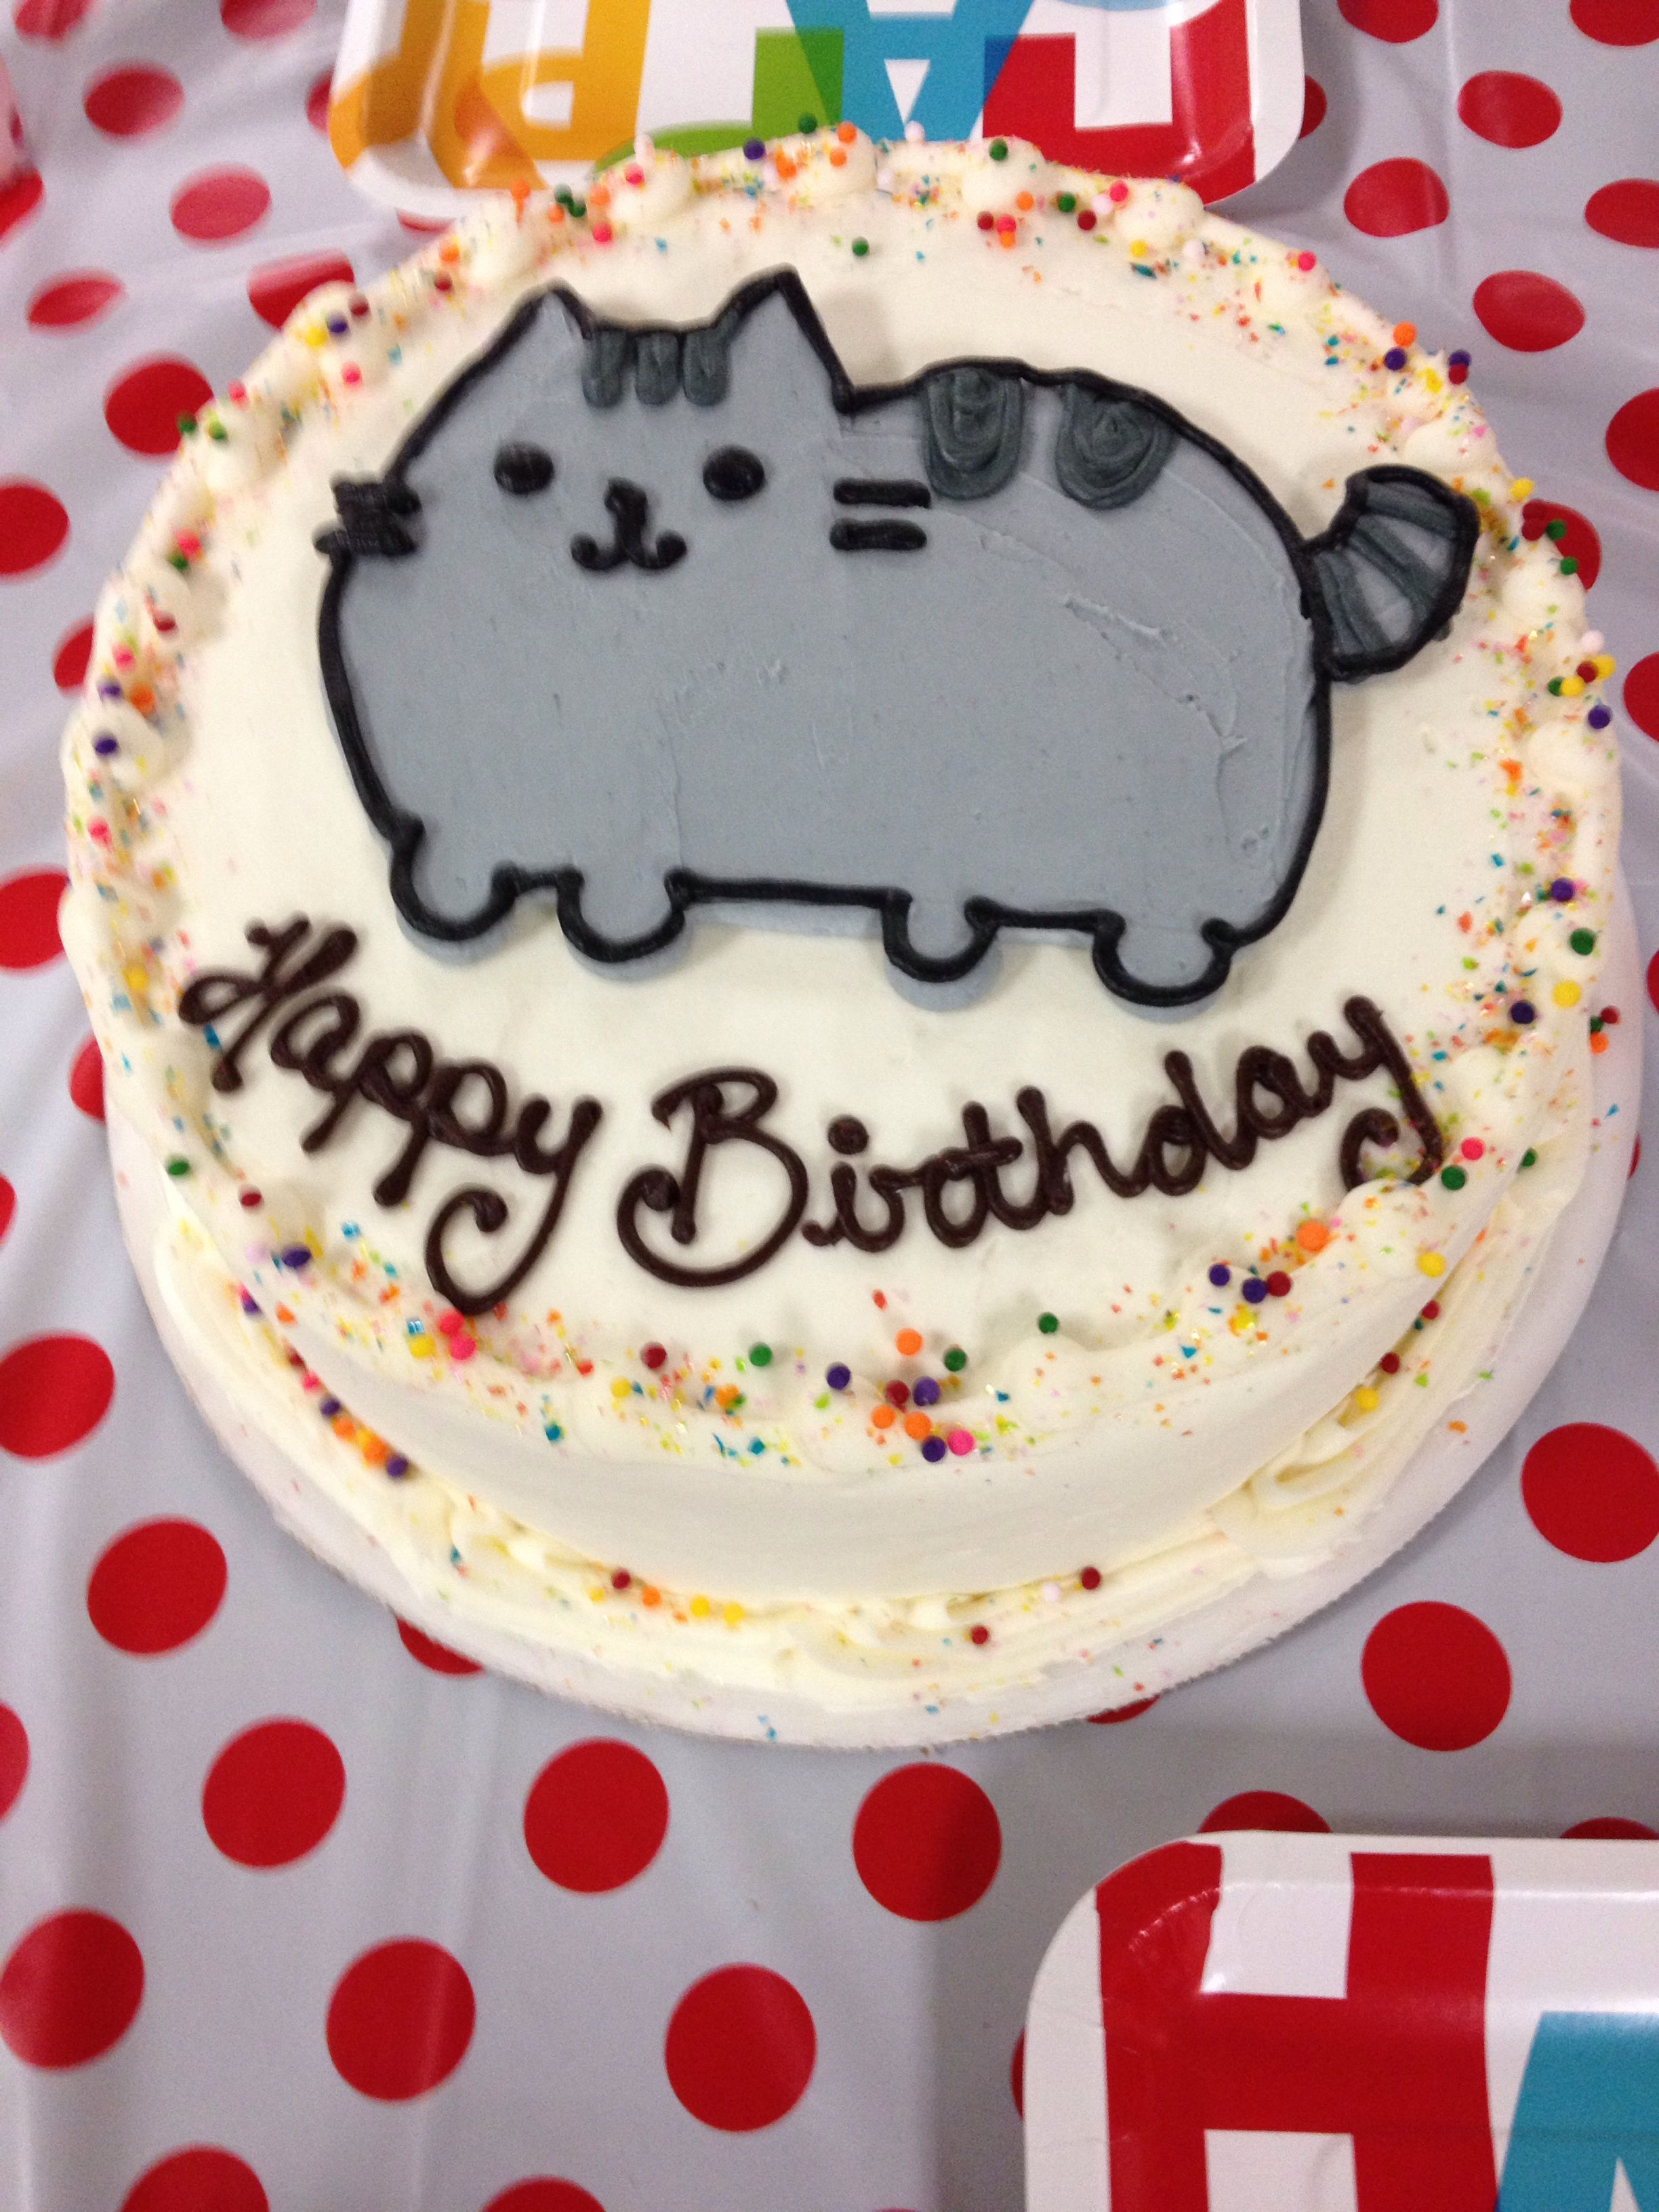 Fashion week Designs Best for cat decorative cakes for lady